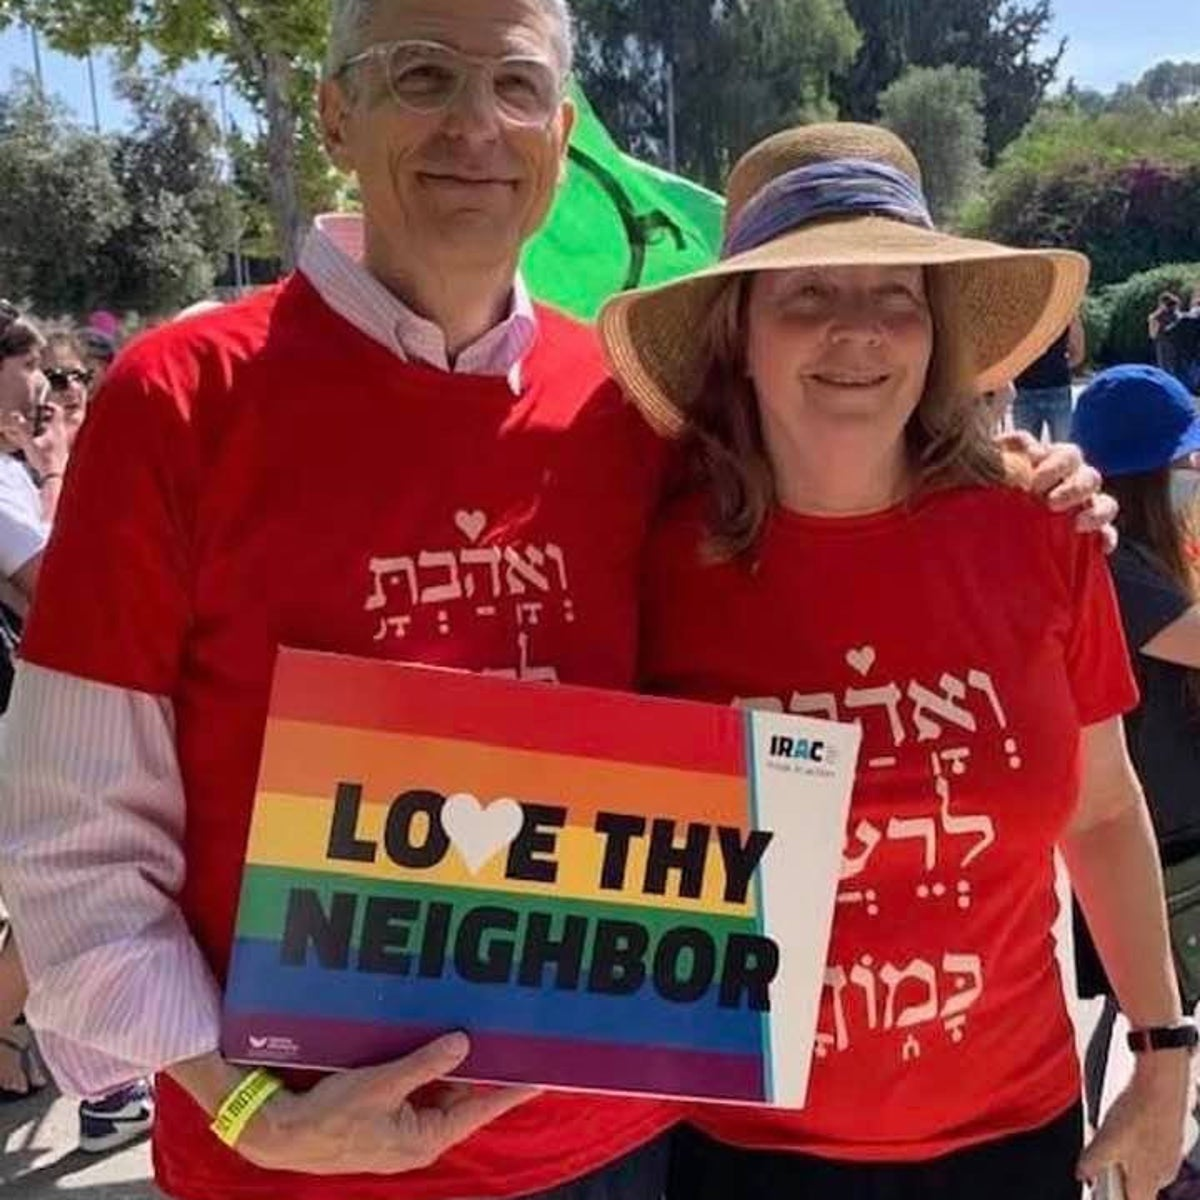 """Rabbi Rick Jacobs and IRAC executive director Anat Hoffman wearing red shirts and holding a rainbow sign that reads """"Love thy neighbor"""" at the Jerusalem Pride Parade in June 2021."""